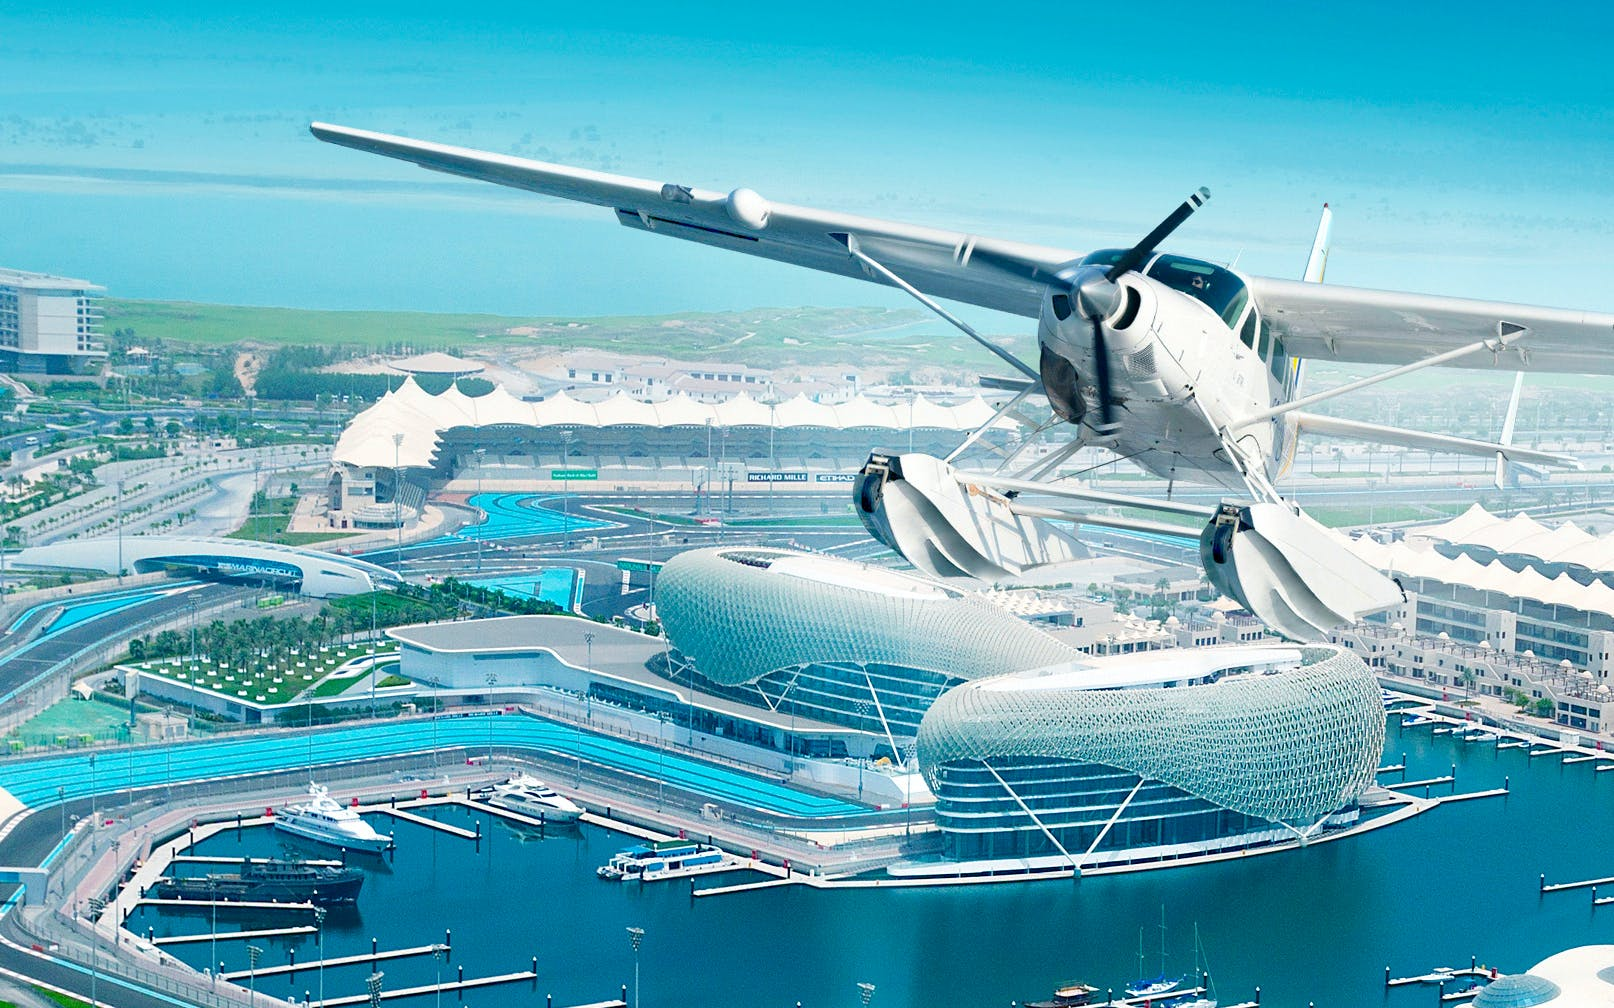 Seaplane Tour and Abu Dhabi Snapshot